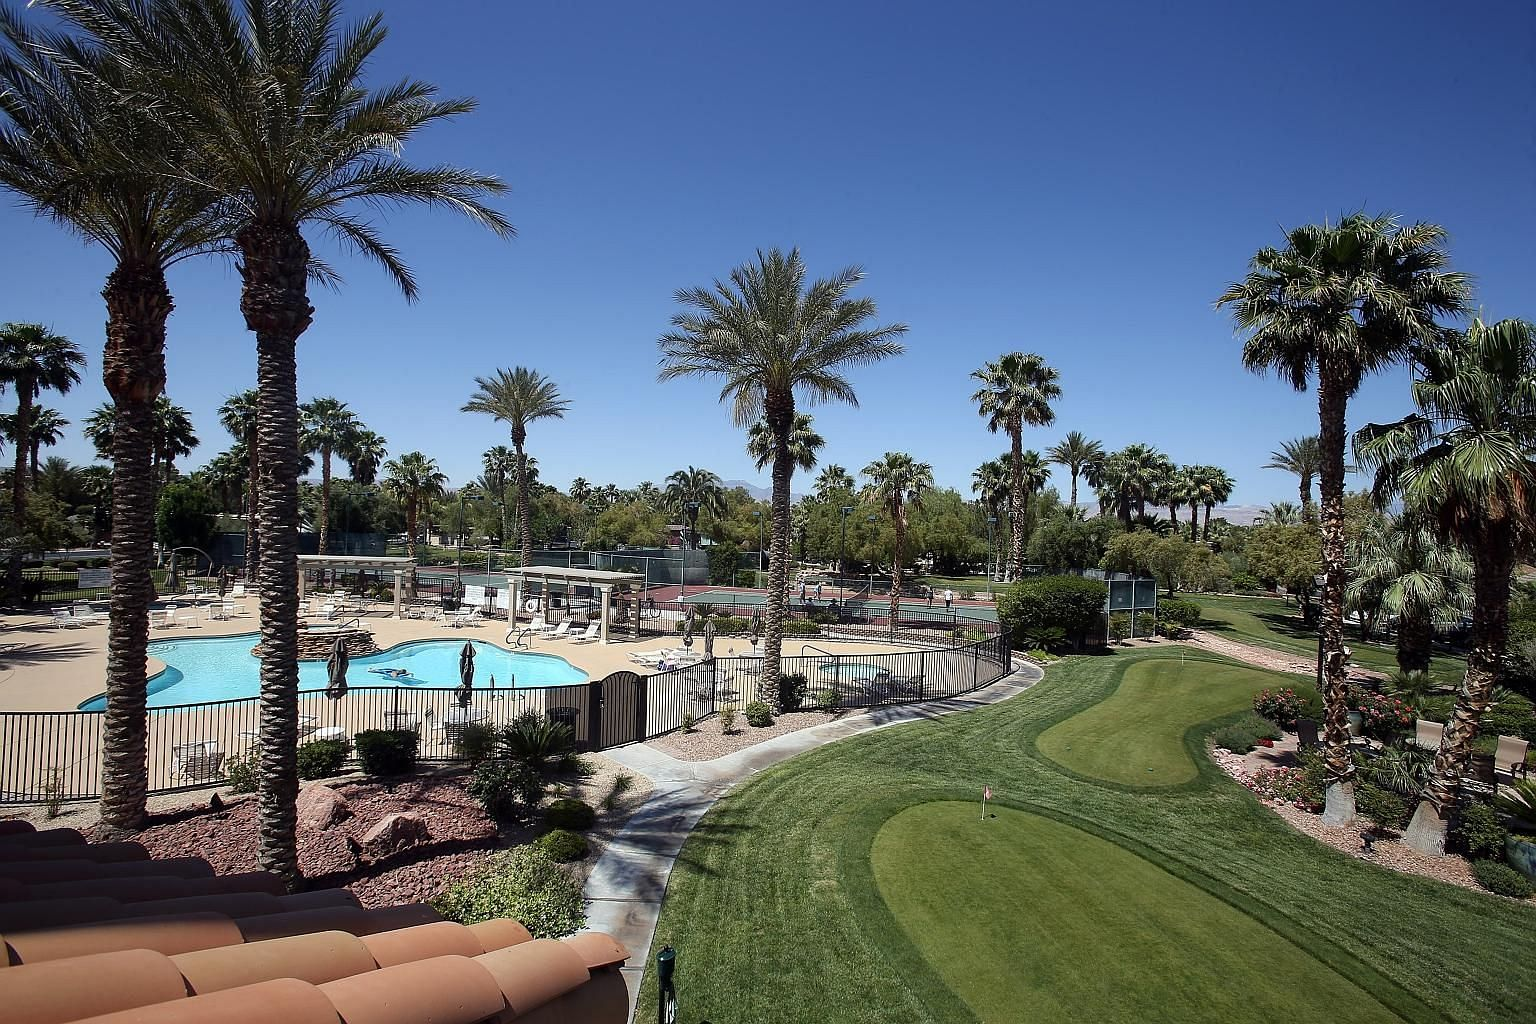 The luxurious Las Vegas Motorcoach Resort (above), where married couple Margie and John Stites (above left) have parked their motor home, comes with pools and a nine-hole putting course.